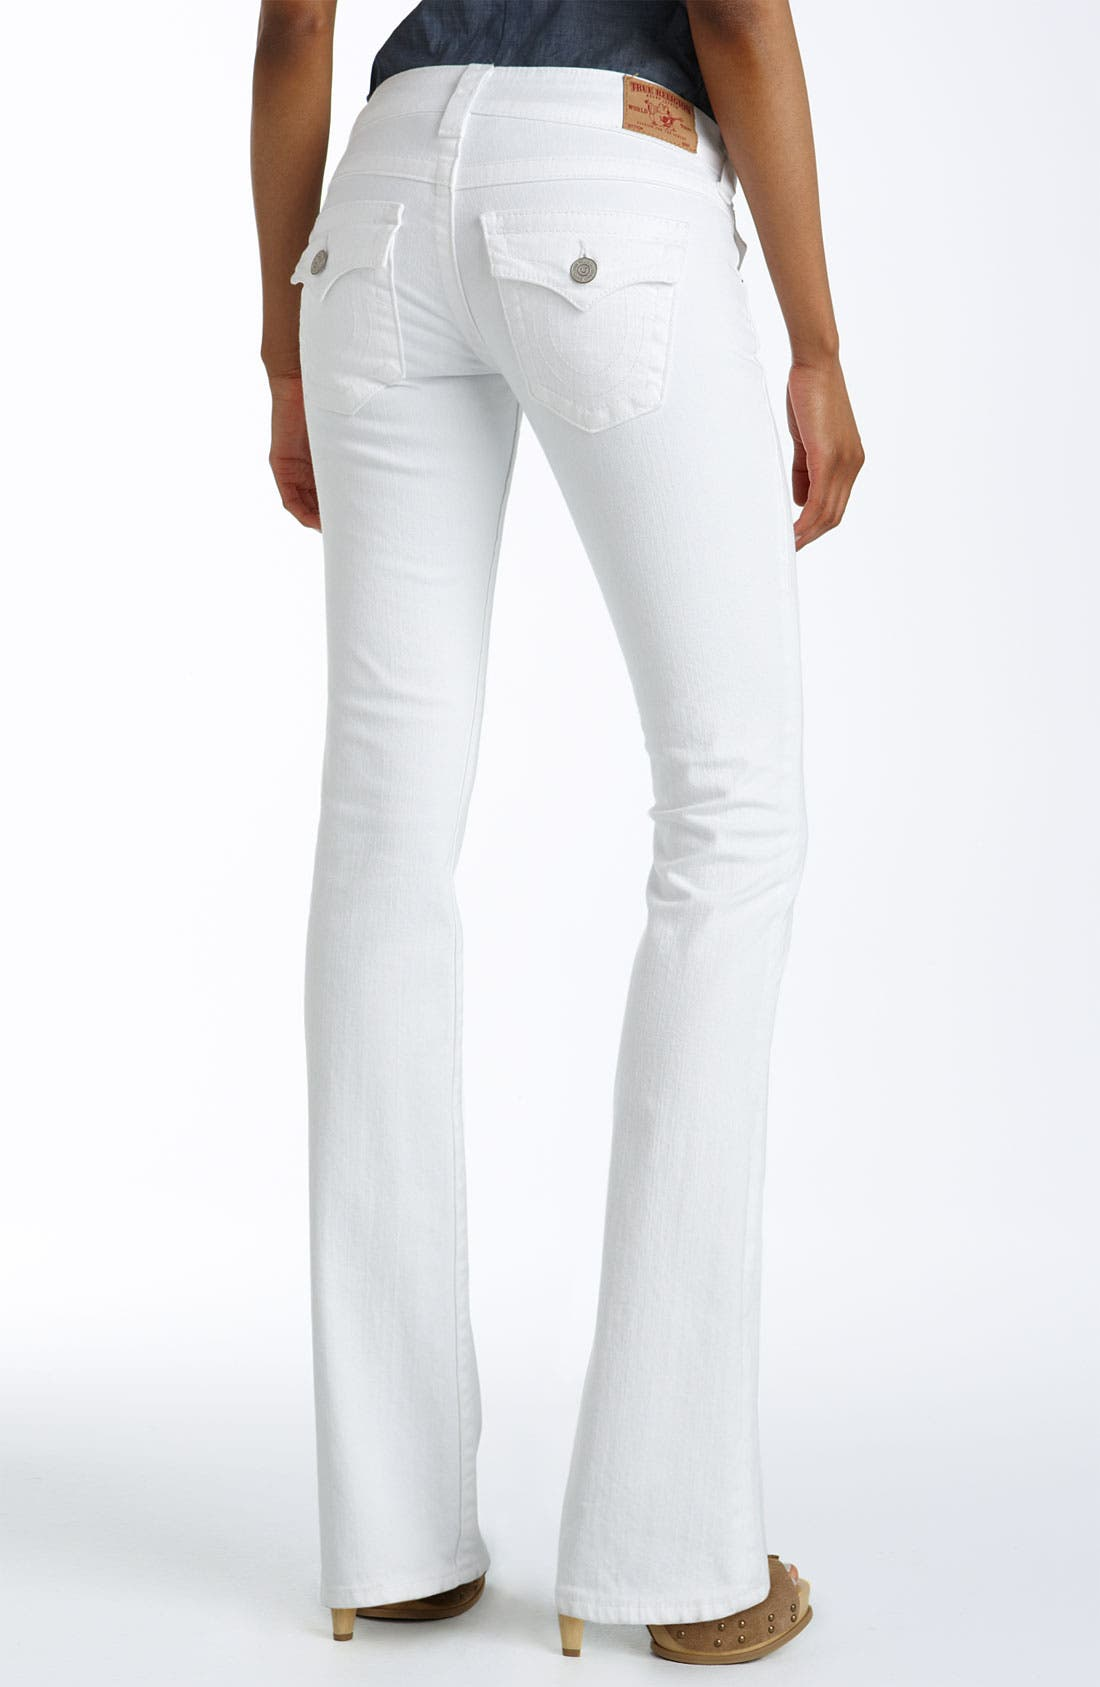 Alternate Image 1 Selected - True Religion Brand Jeans 'Becky' Bootcut Stretch Jeans (Body Rinse White)